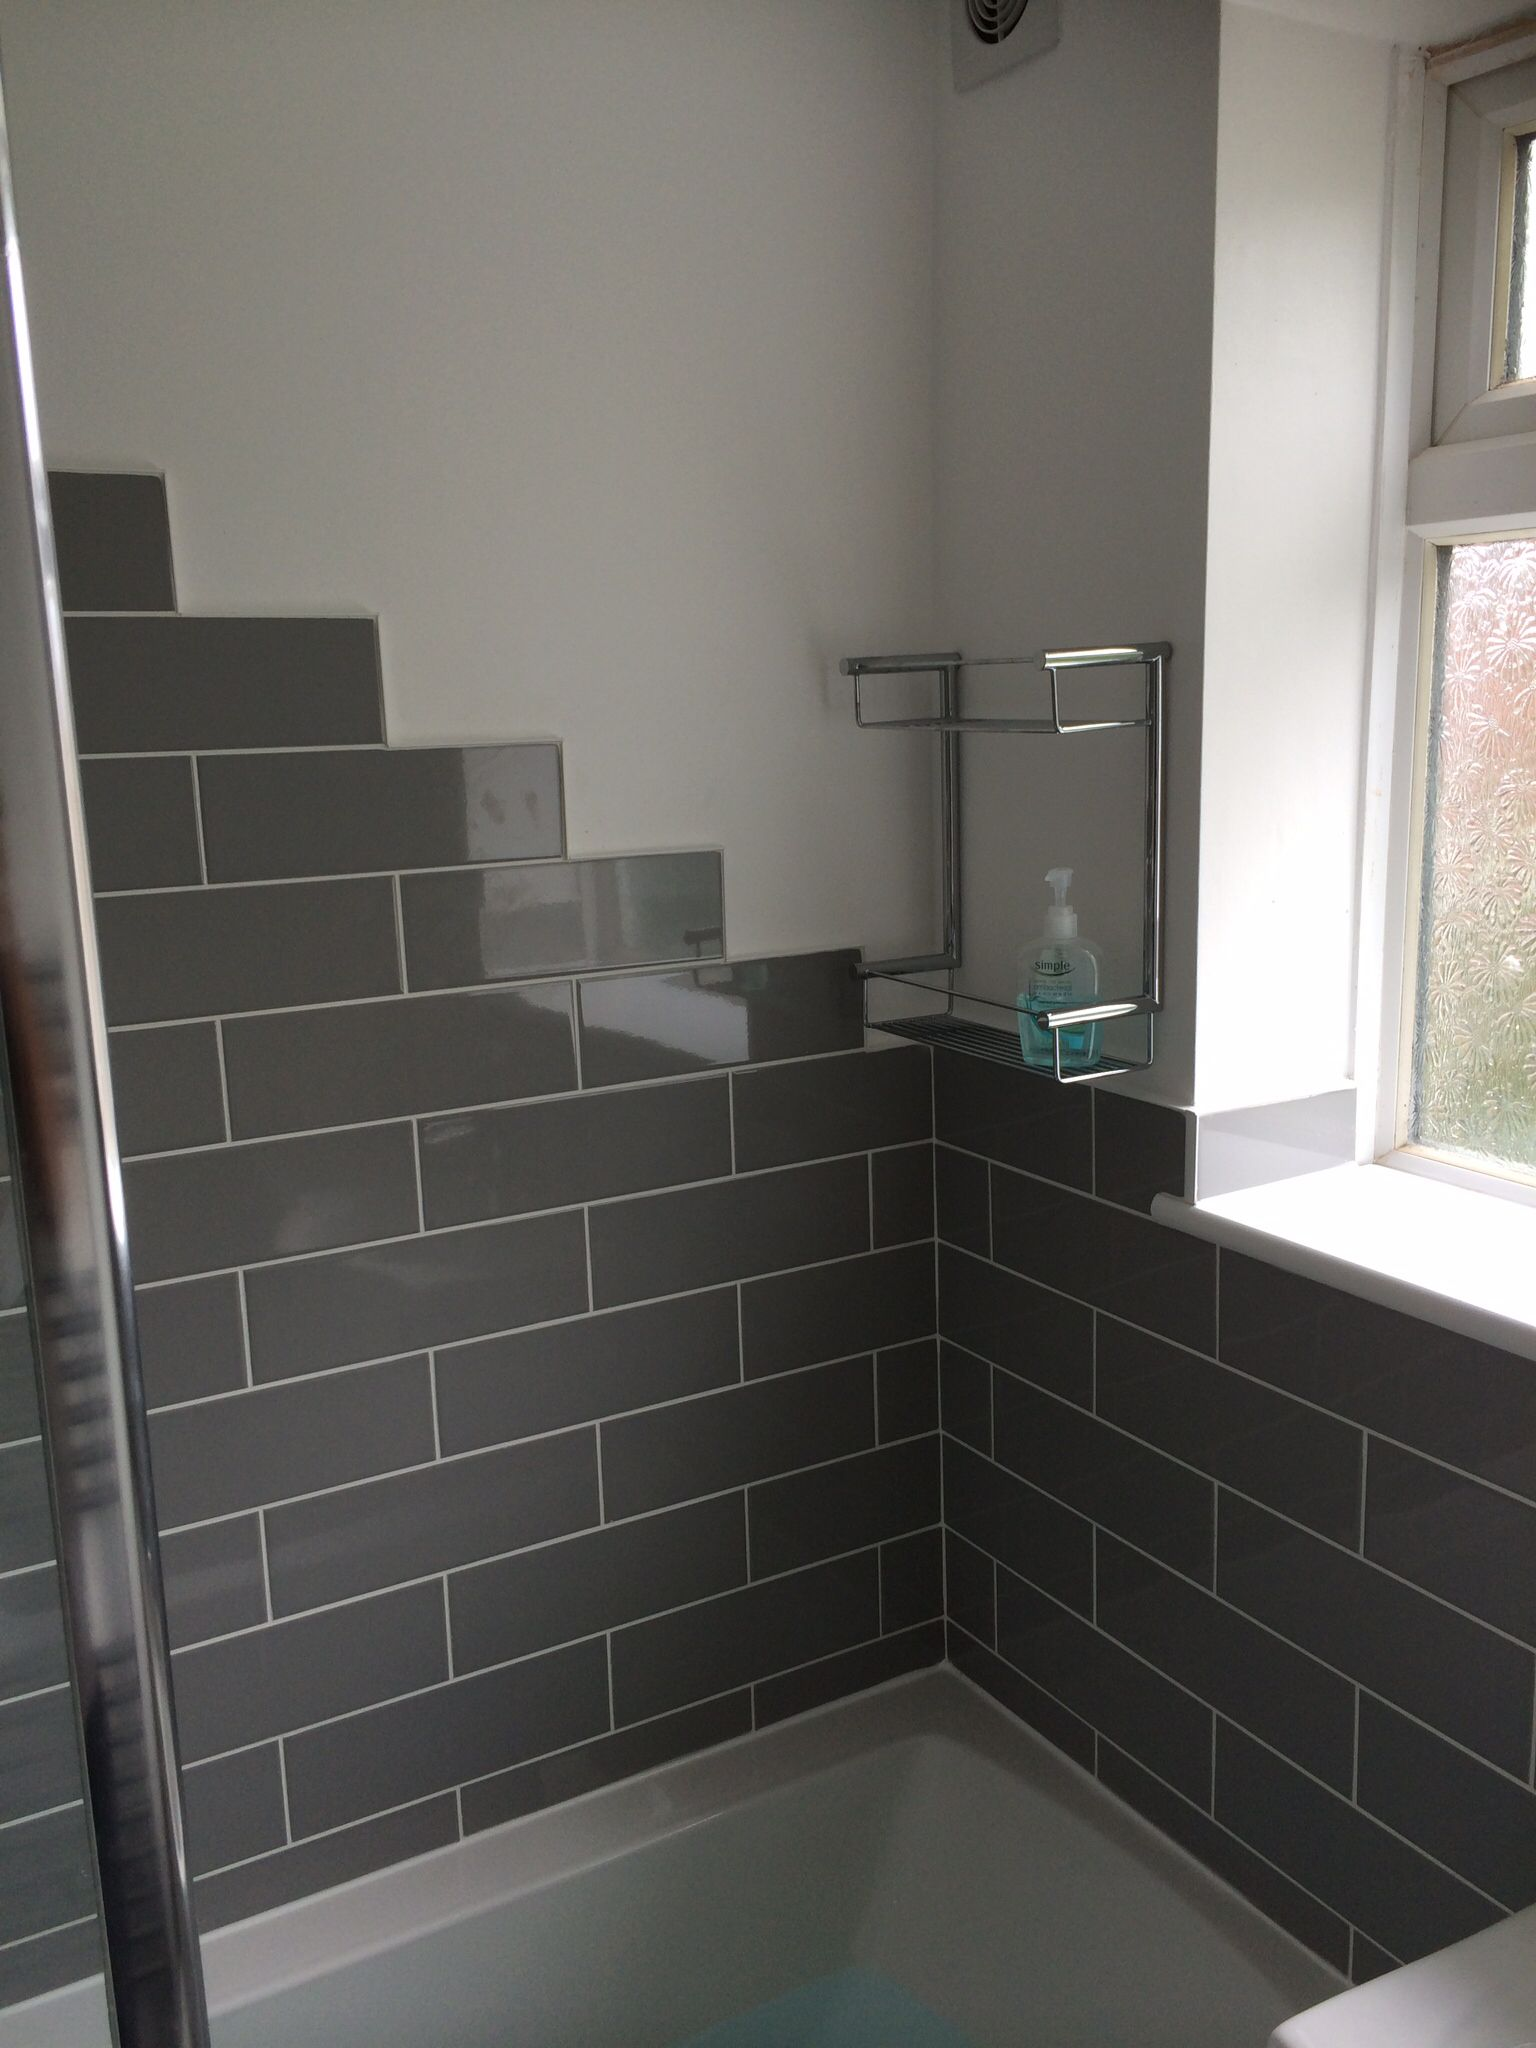 Stunning Linear Grey Brick Style Tiles From Topps Tiles Designed And Installed By Aquanero Bathroom Design In Brick Style Tiles Bathroom Design House Design